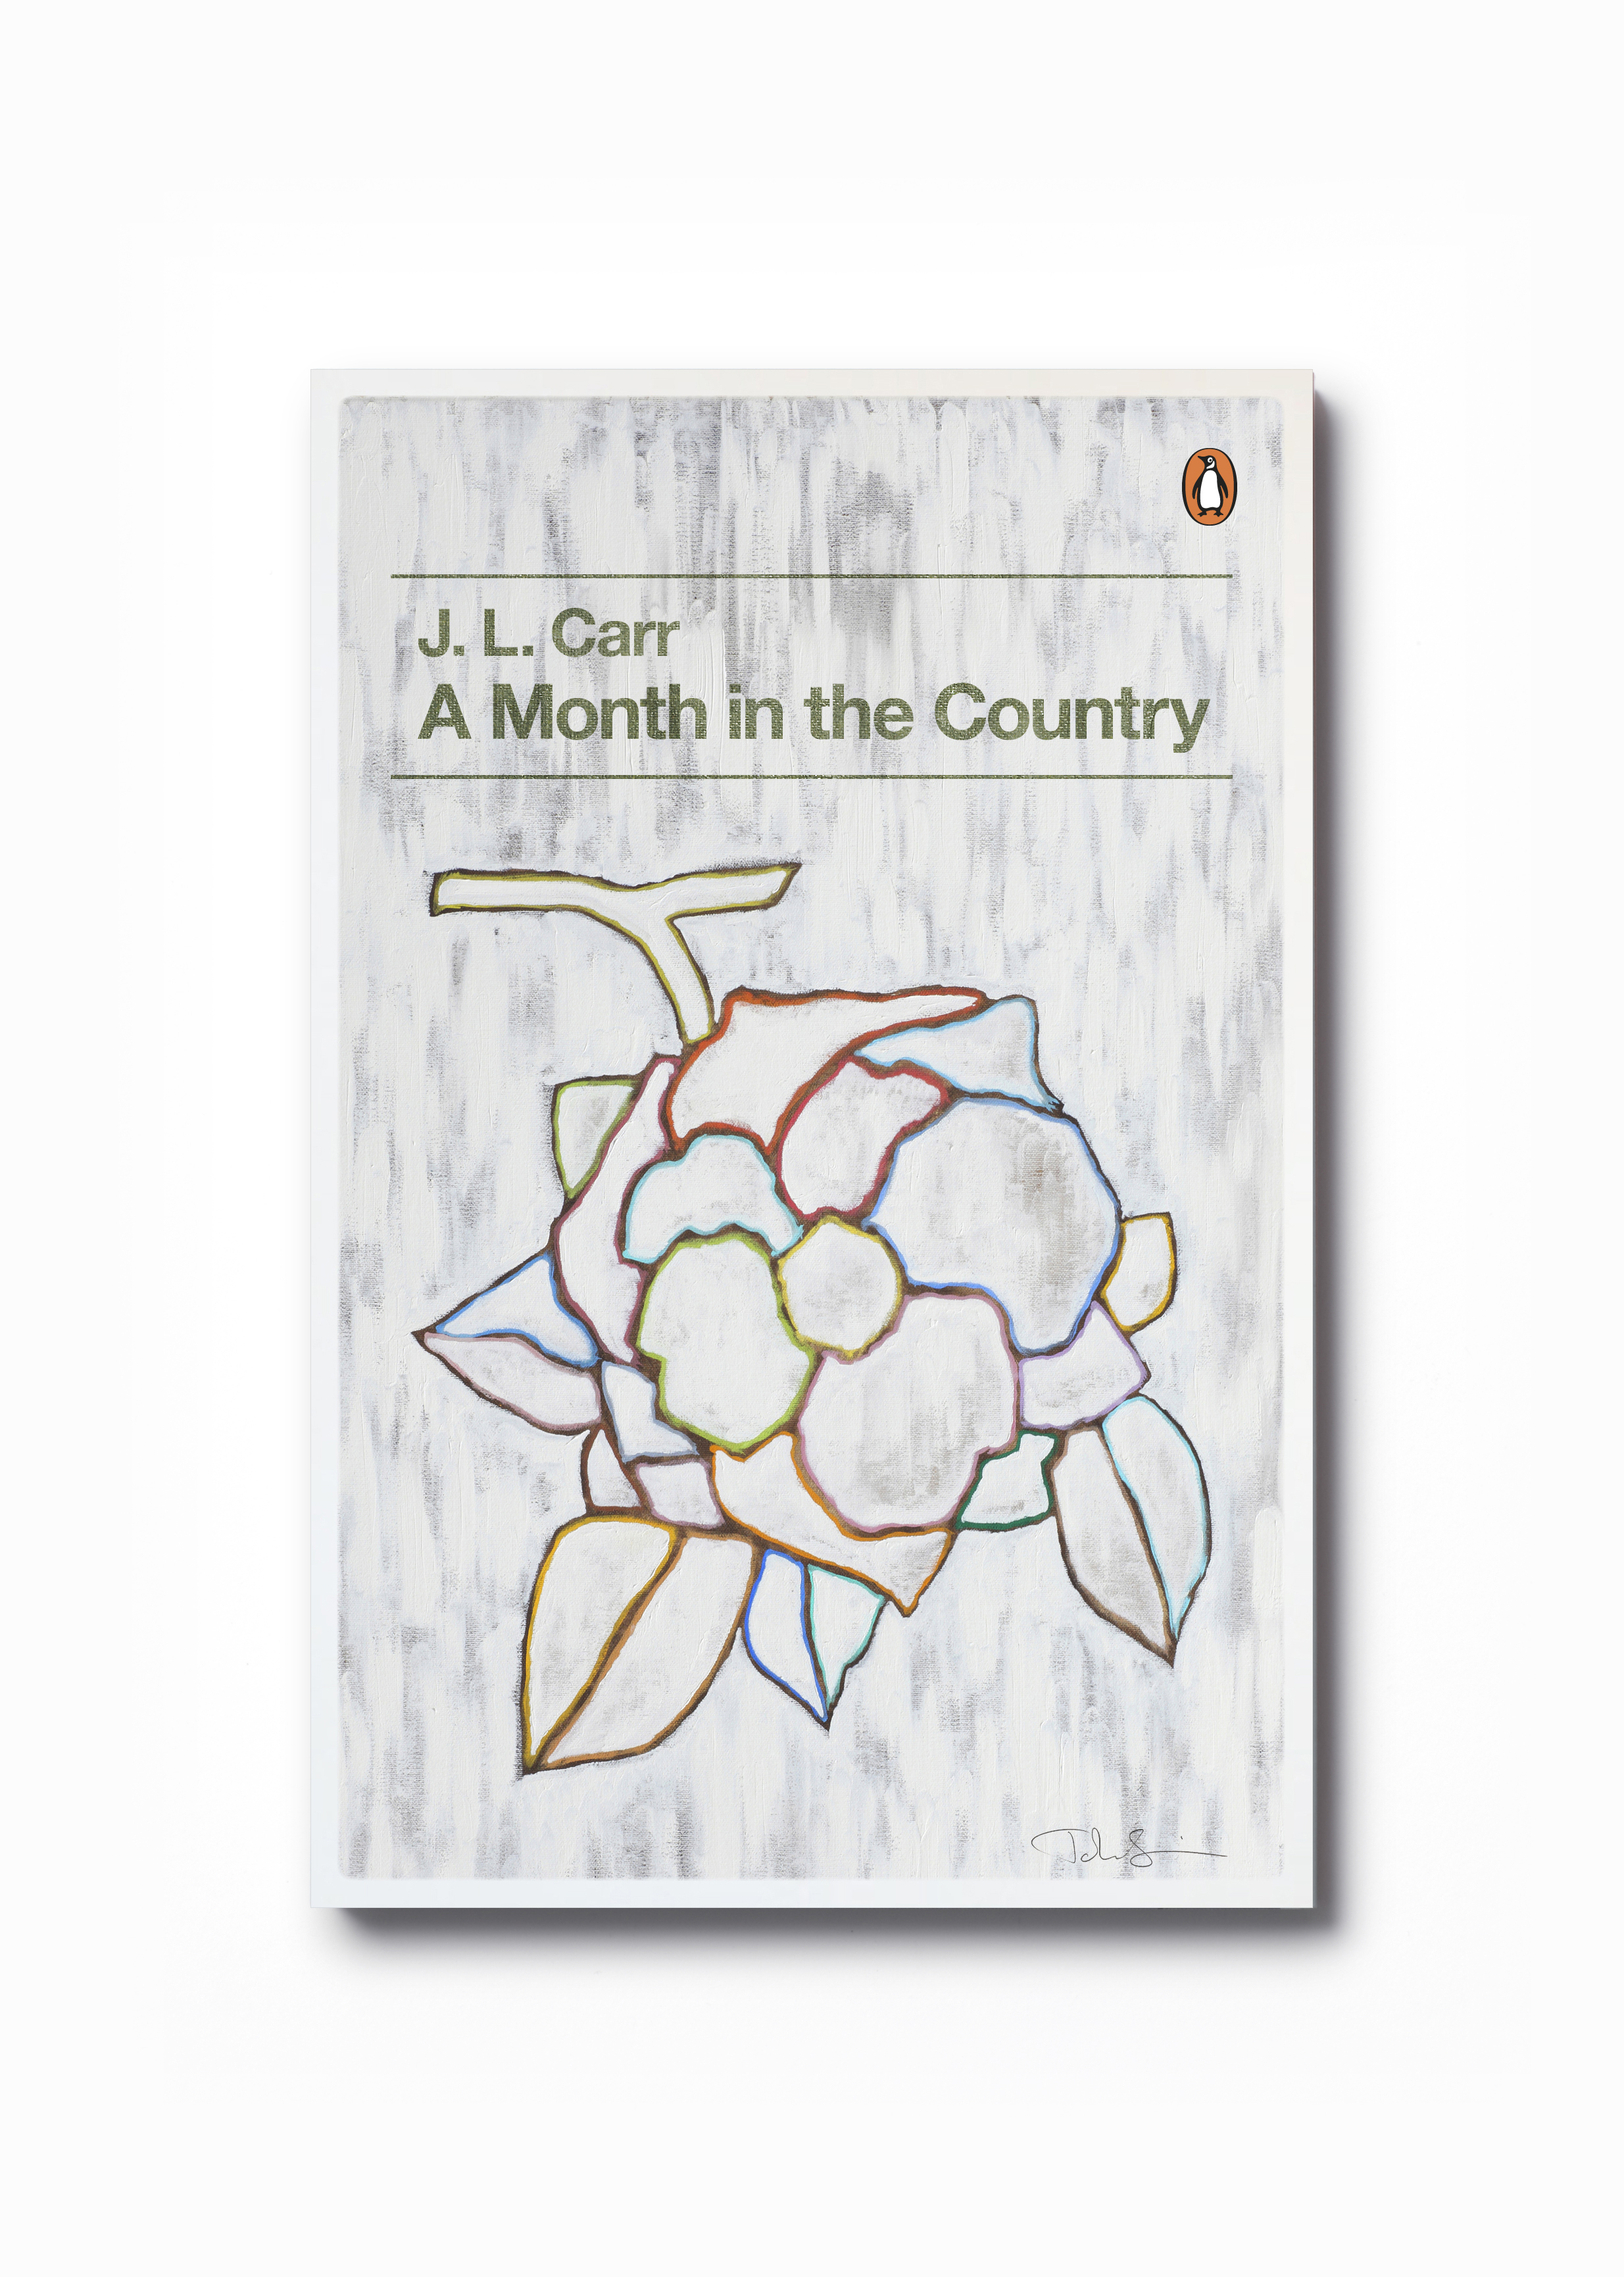 A Month in the Country by J. L. Carr  (Penguin Decades series) - Art: John Squire Design: Jim Stoddart